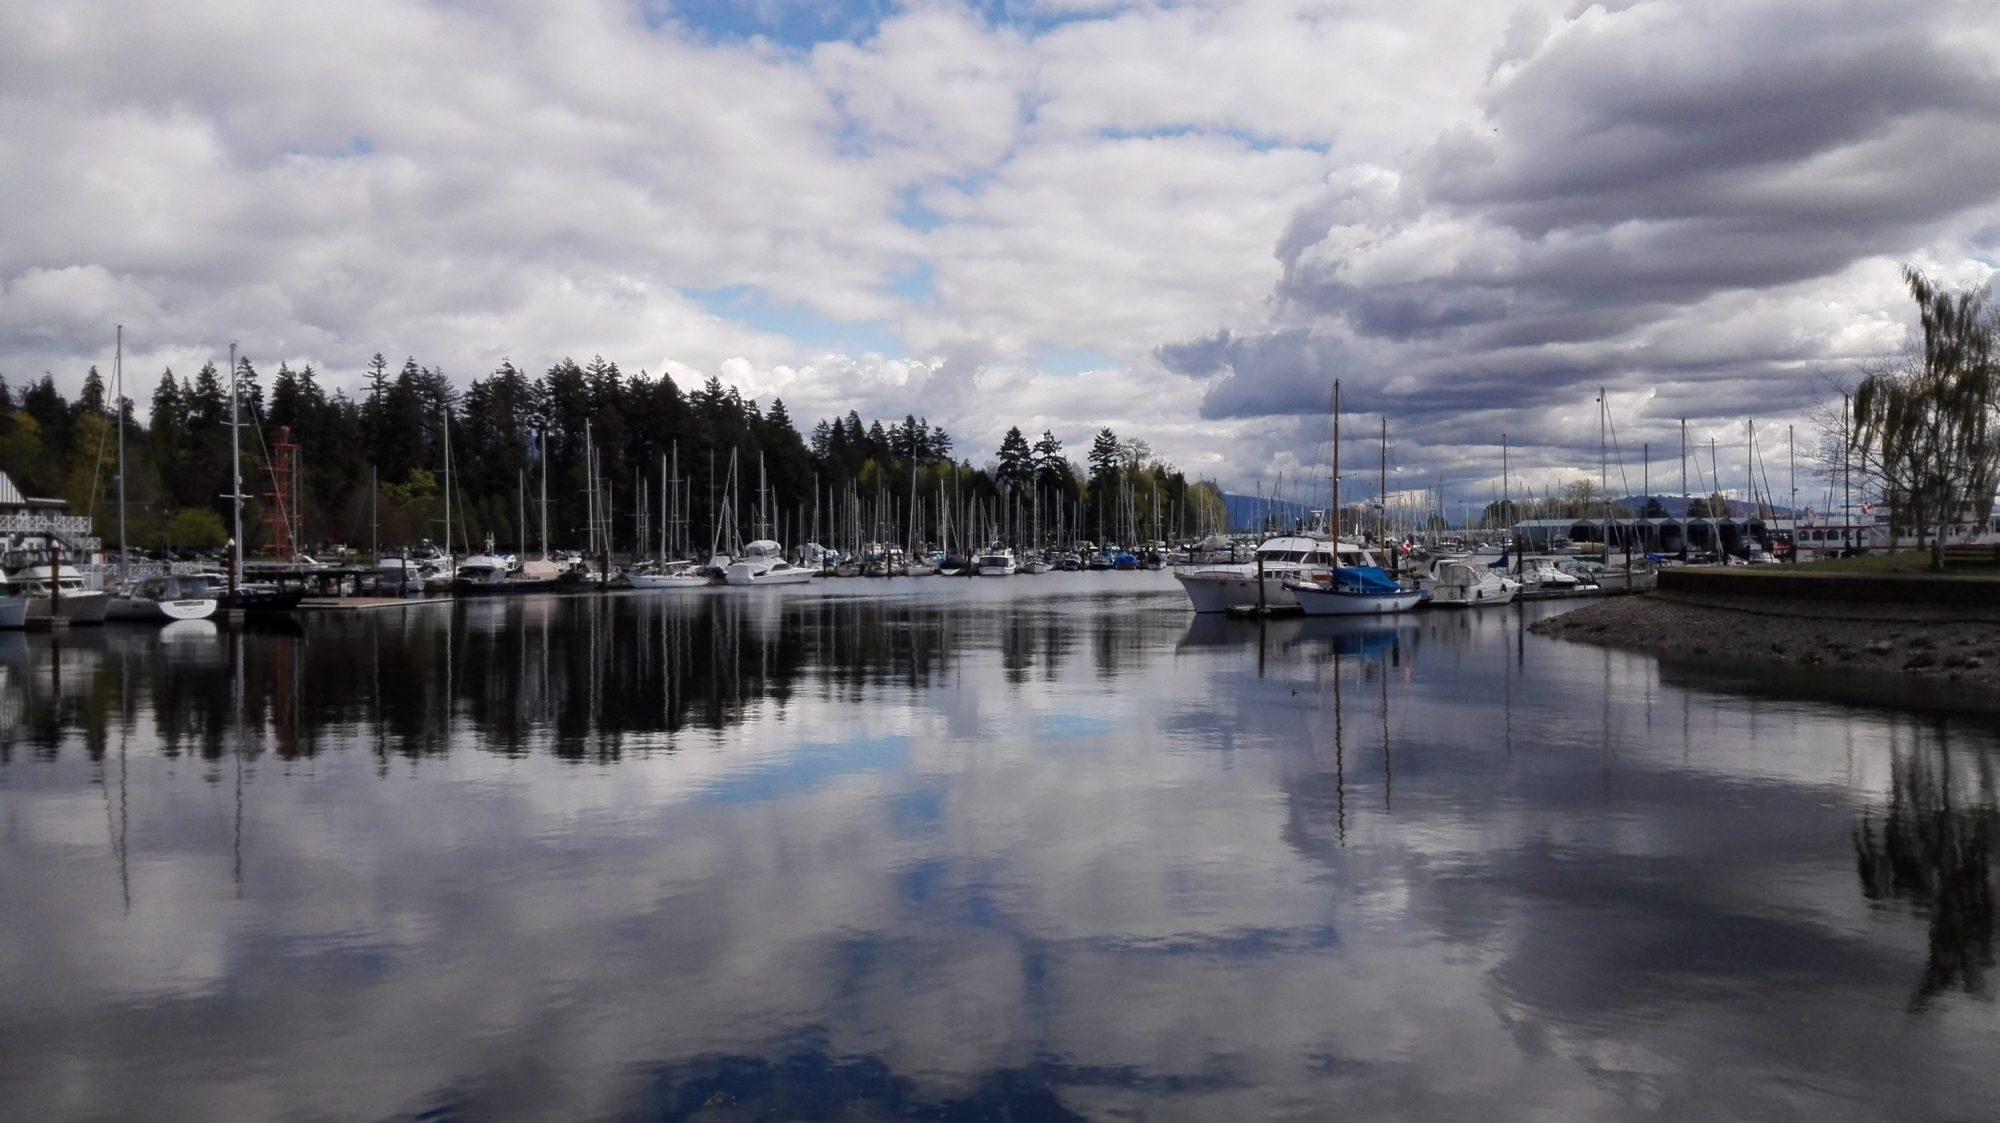 cloudy sky, boats, and trees reflection on water at Seawall, Vancouver BC Canada